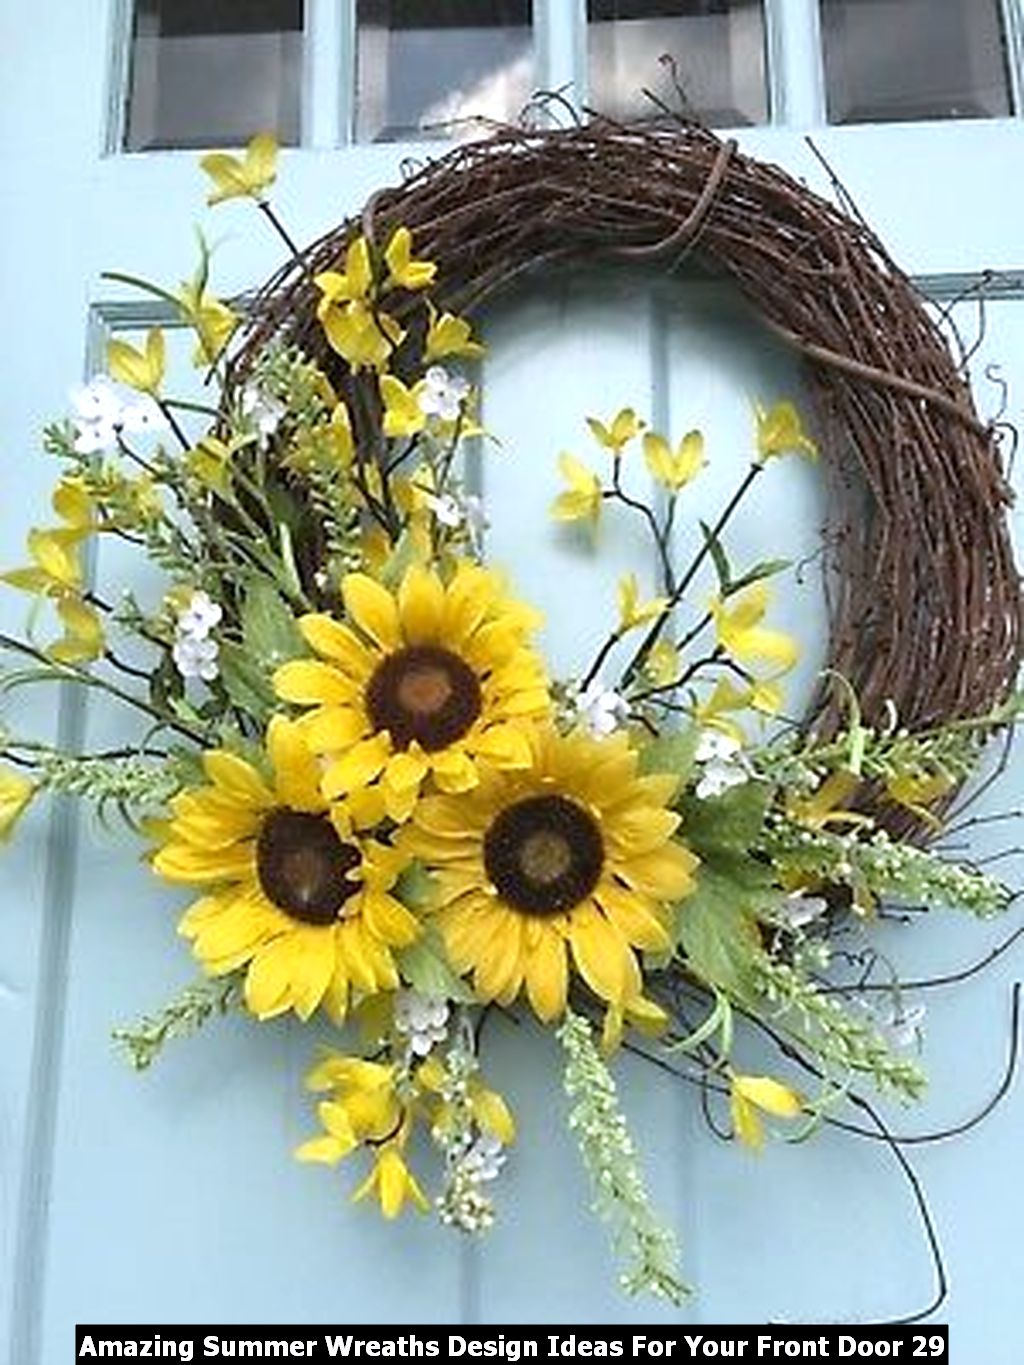 Amazing Summer Wreaths Design Ideas For Your Front Door 29